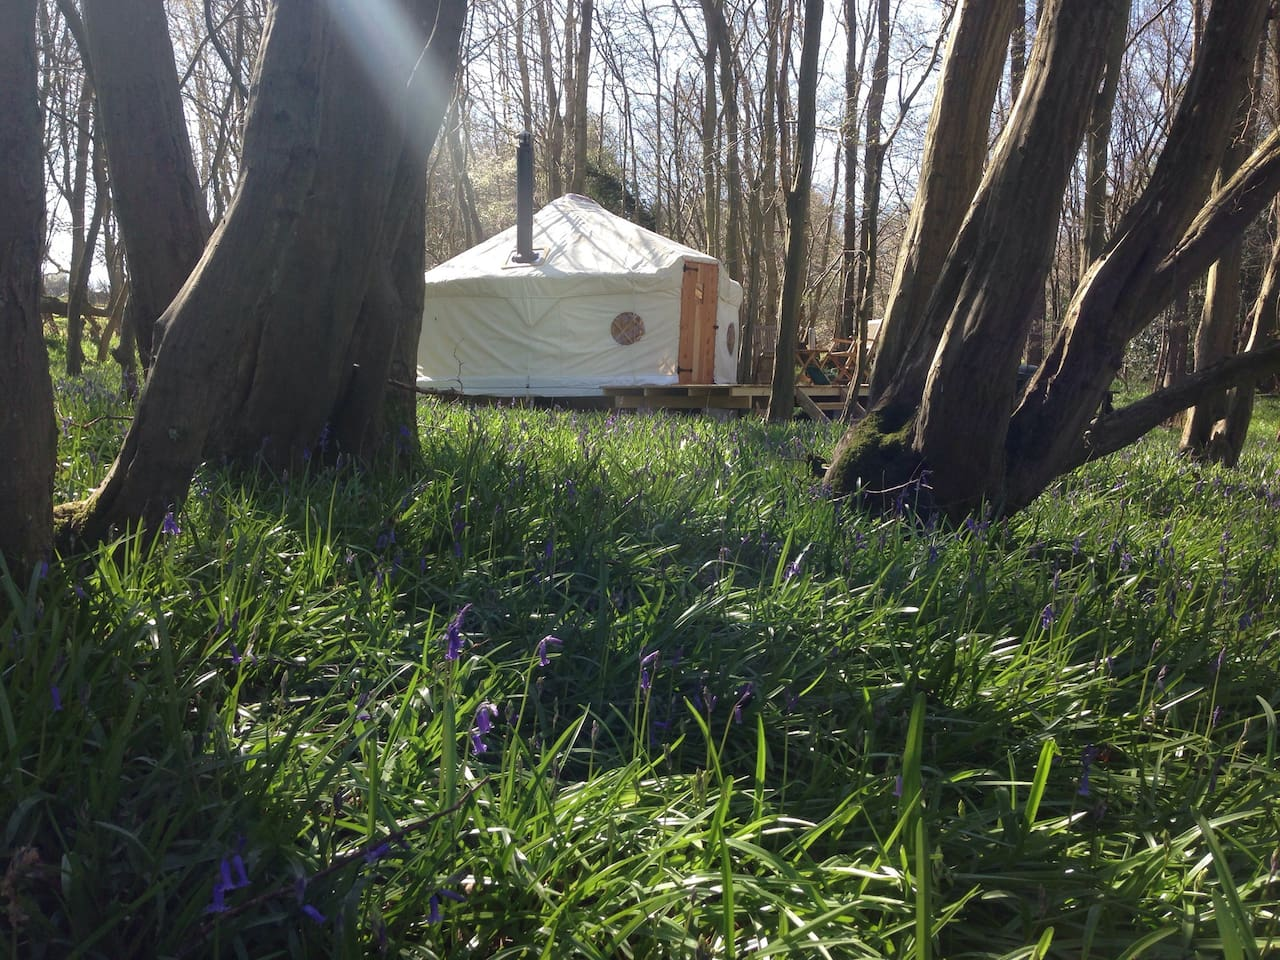 Beautiful setting in bluebell woods